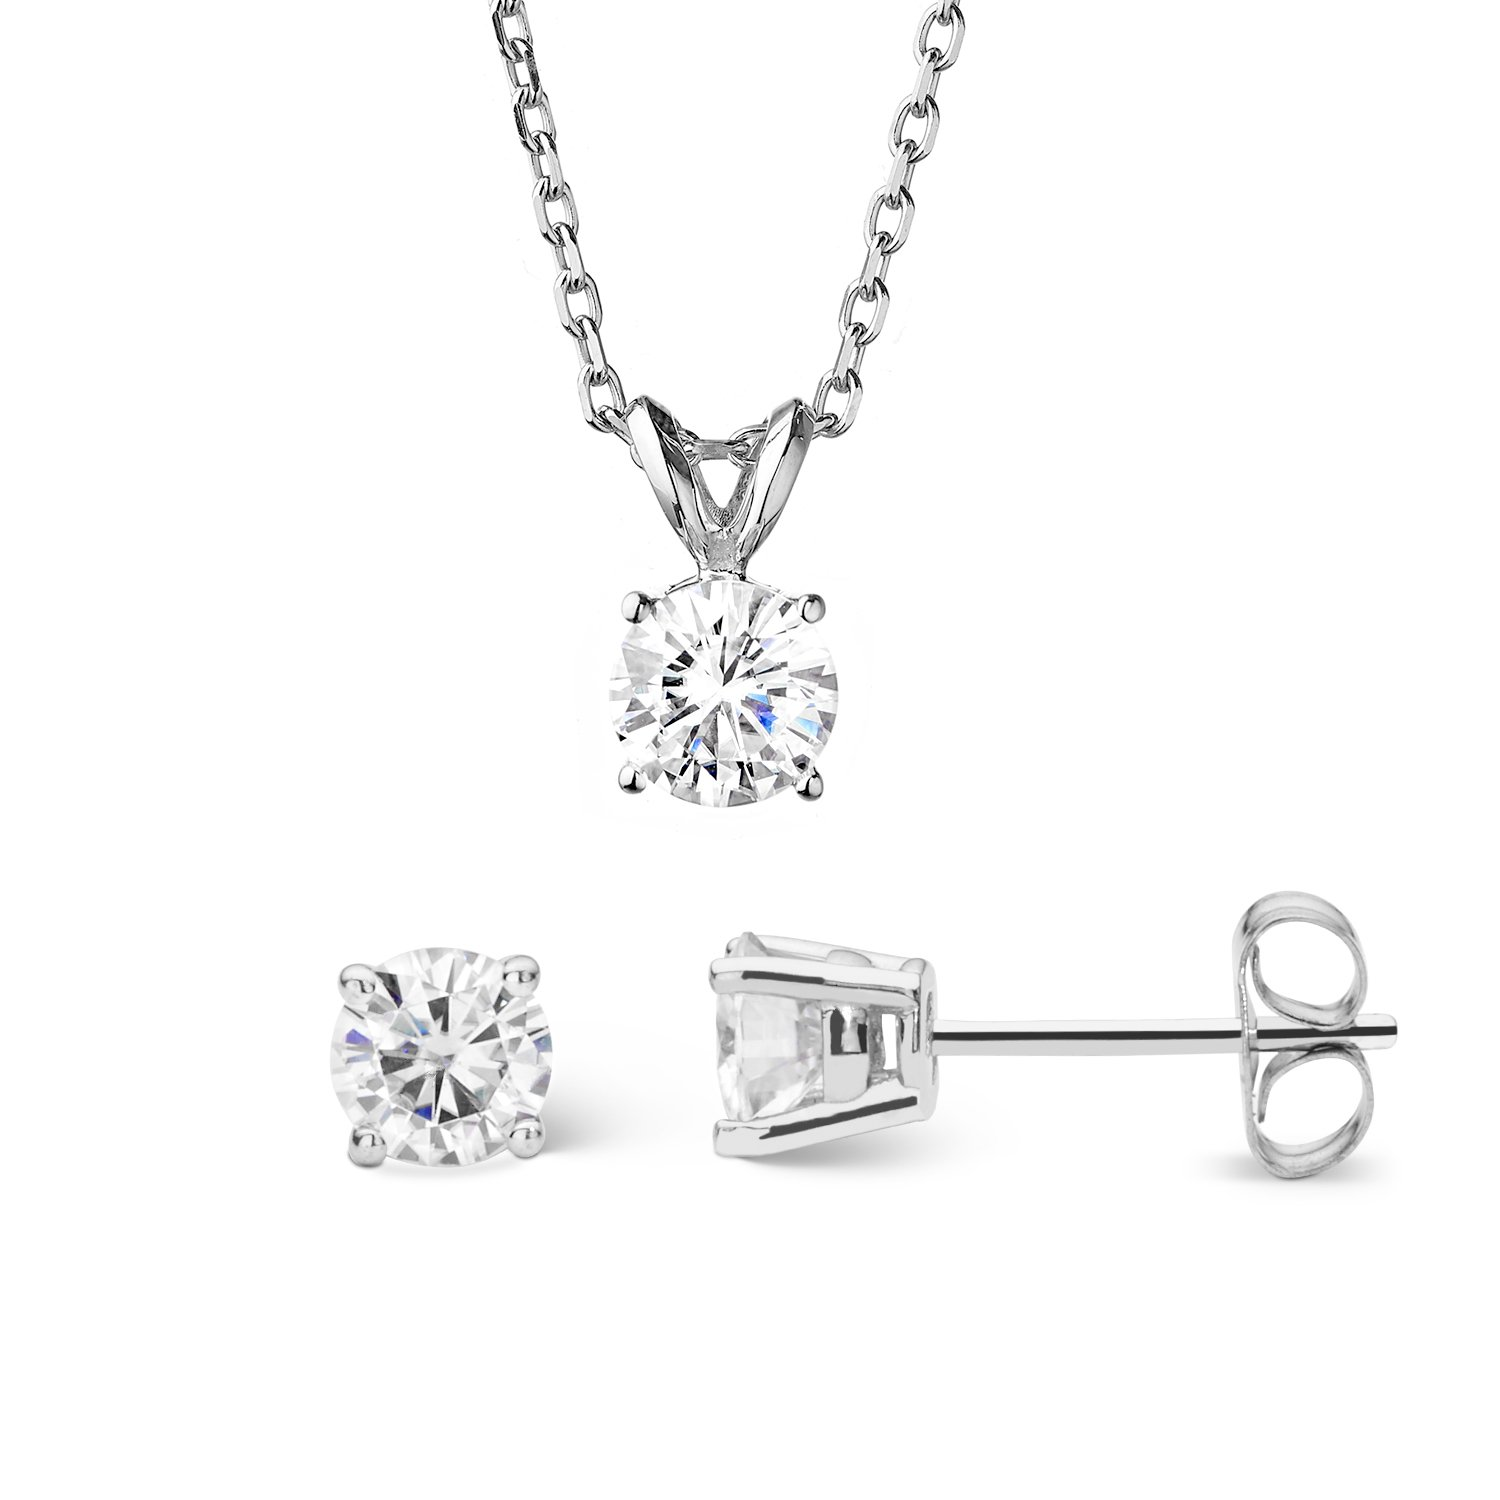 Forever Classic Round Cut 6.0mm Moissanite Earrings and Pendant Necklace Set by Charles & Colvard